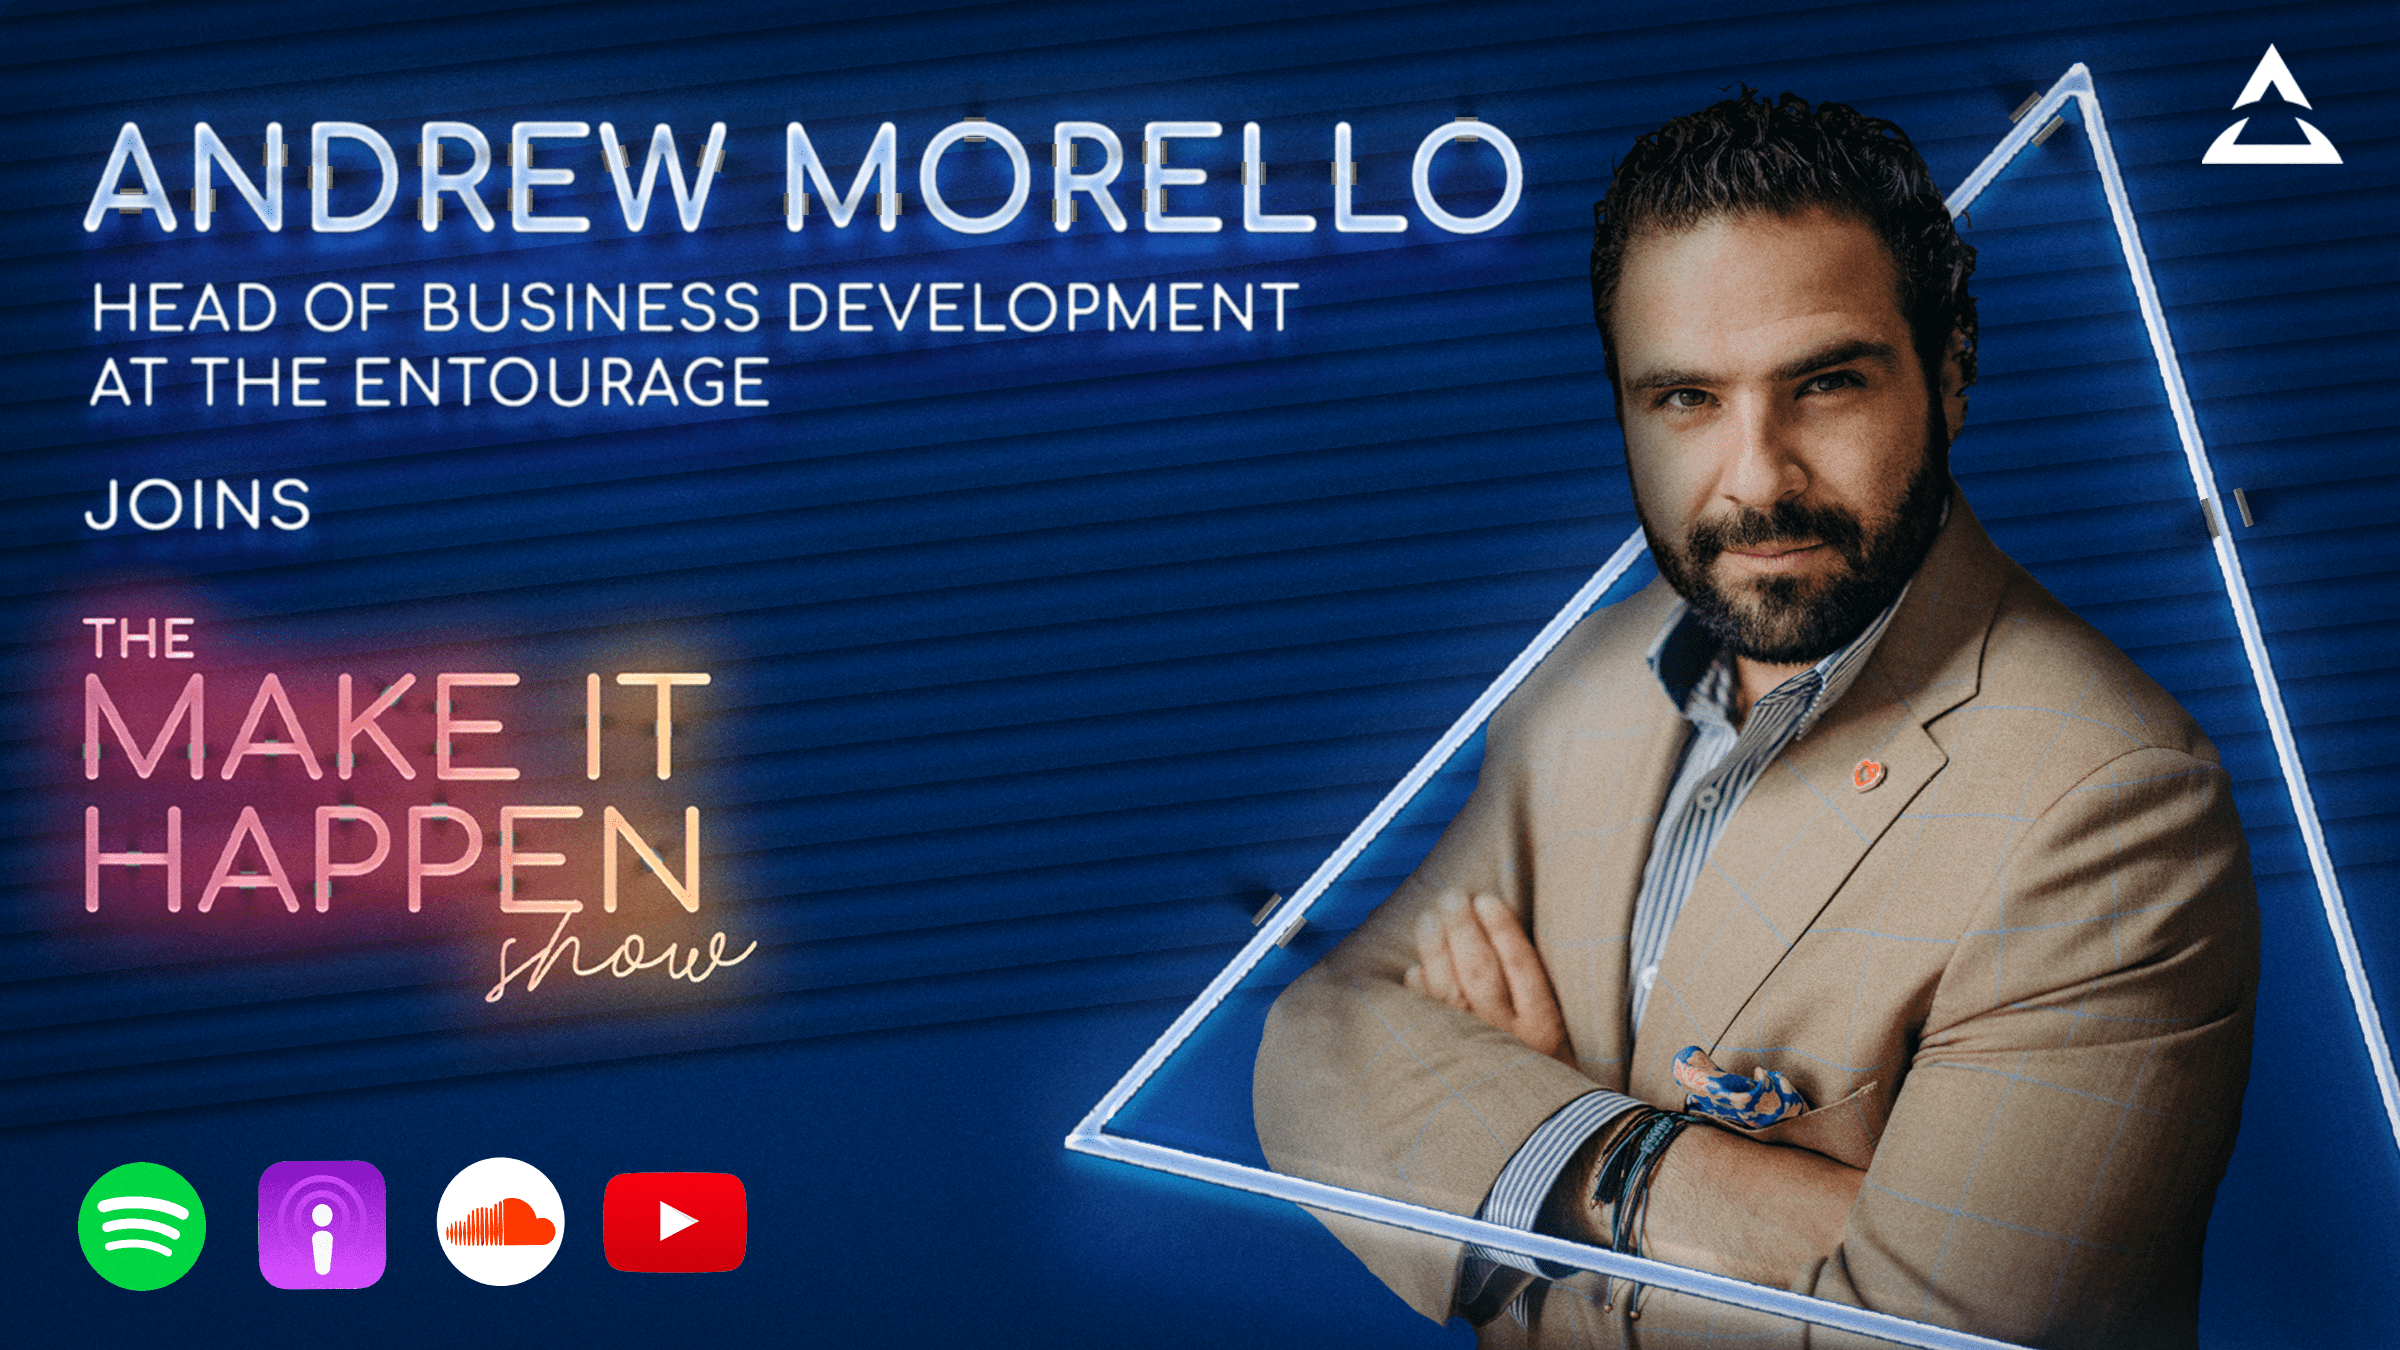 30. Andrew Morello promotional image for The Make It Happen Show